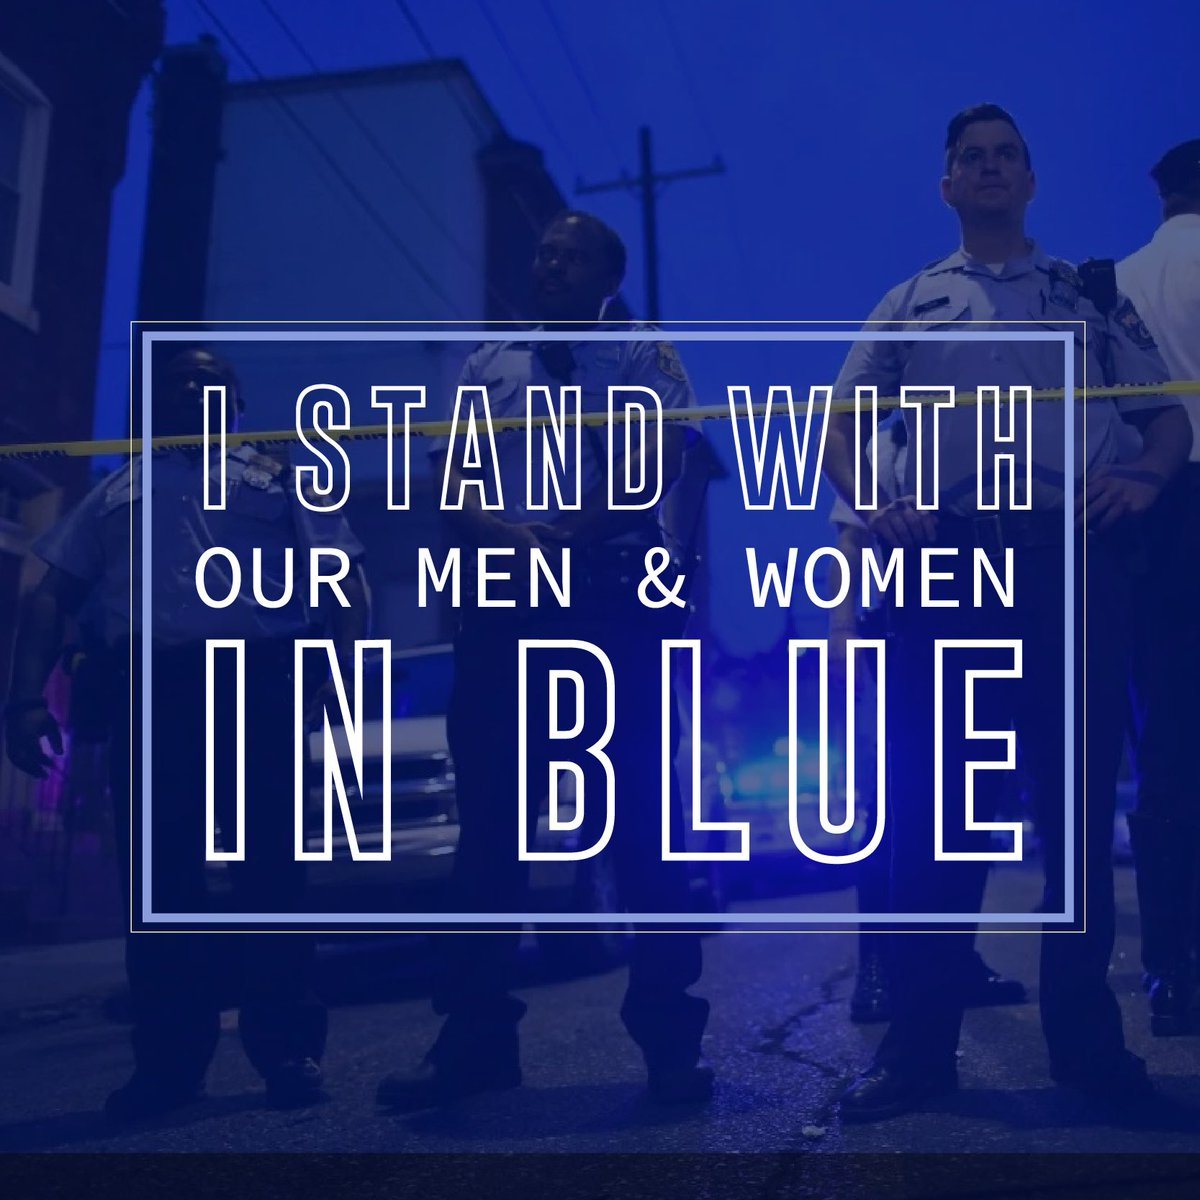 Praying for the brave law enforcement officers injured in Philadelphia. We must come together as a country united behind the men and women that keep us safe.